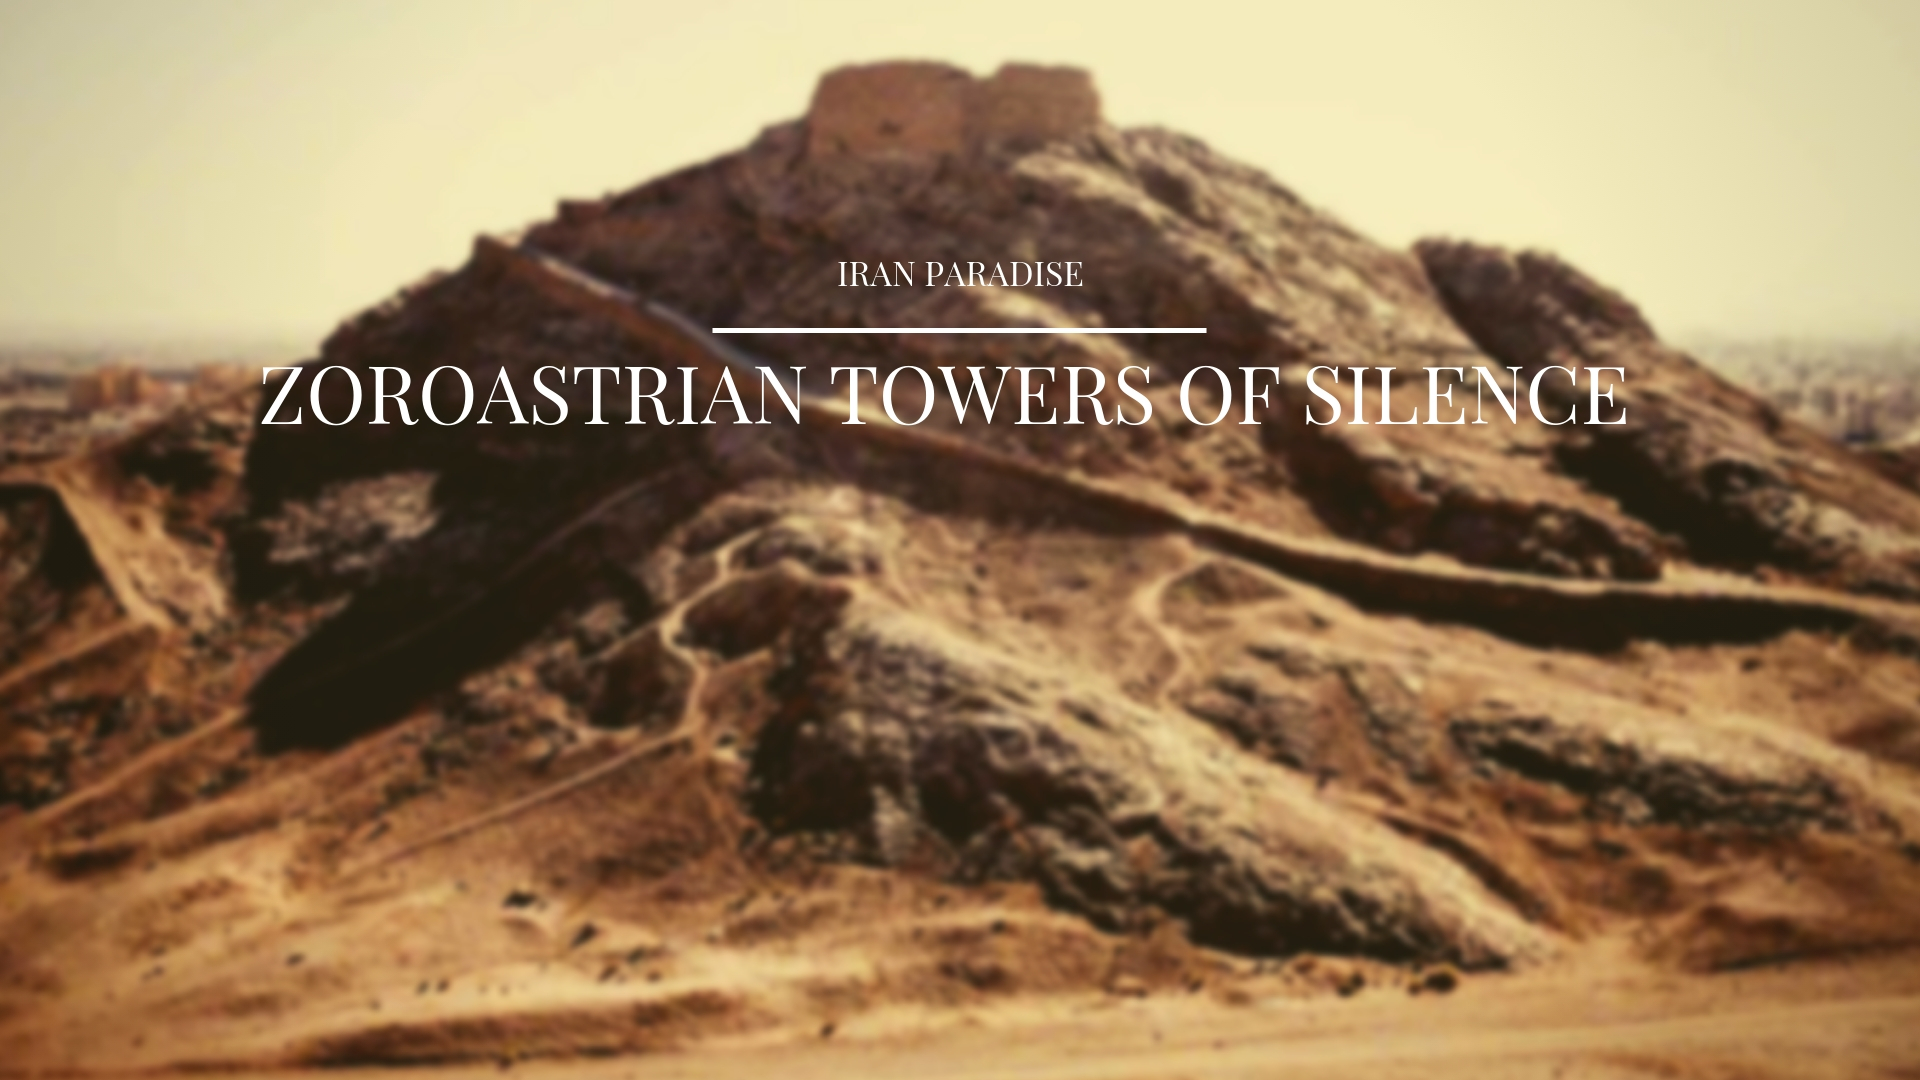 Zoroastrian Towers of Silence